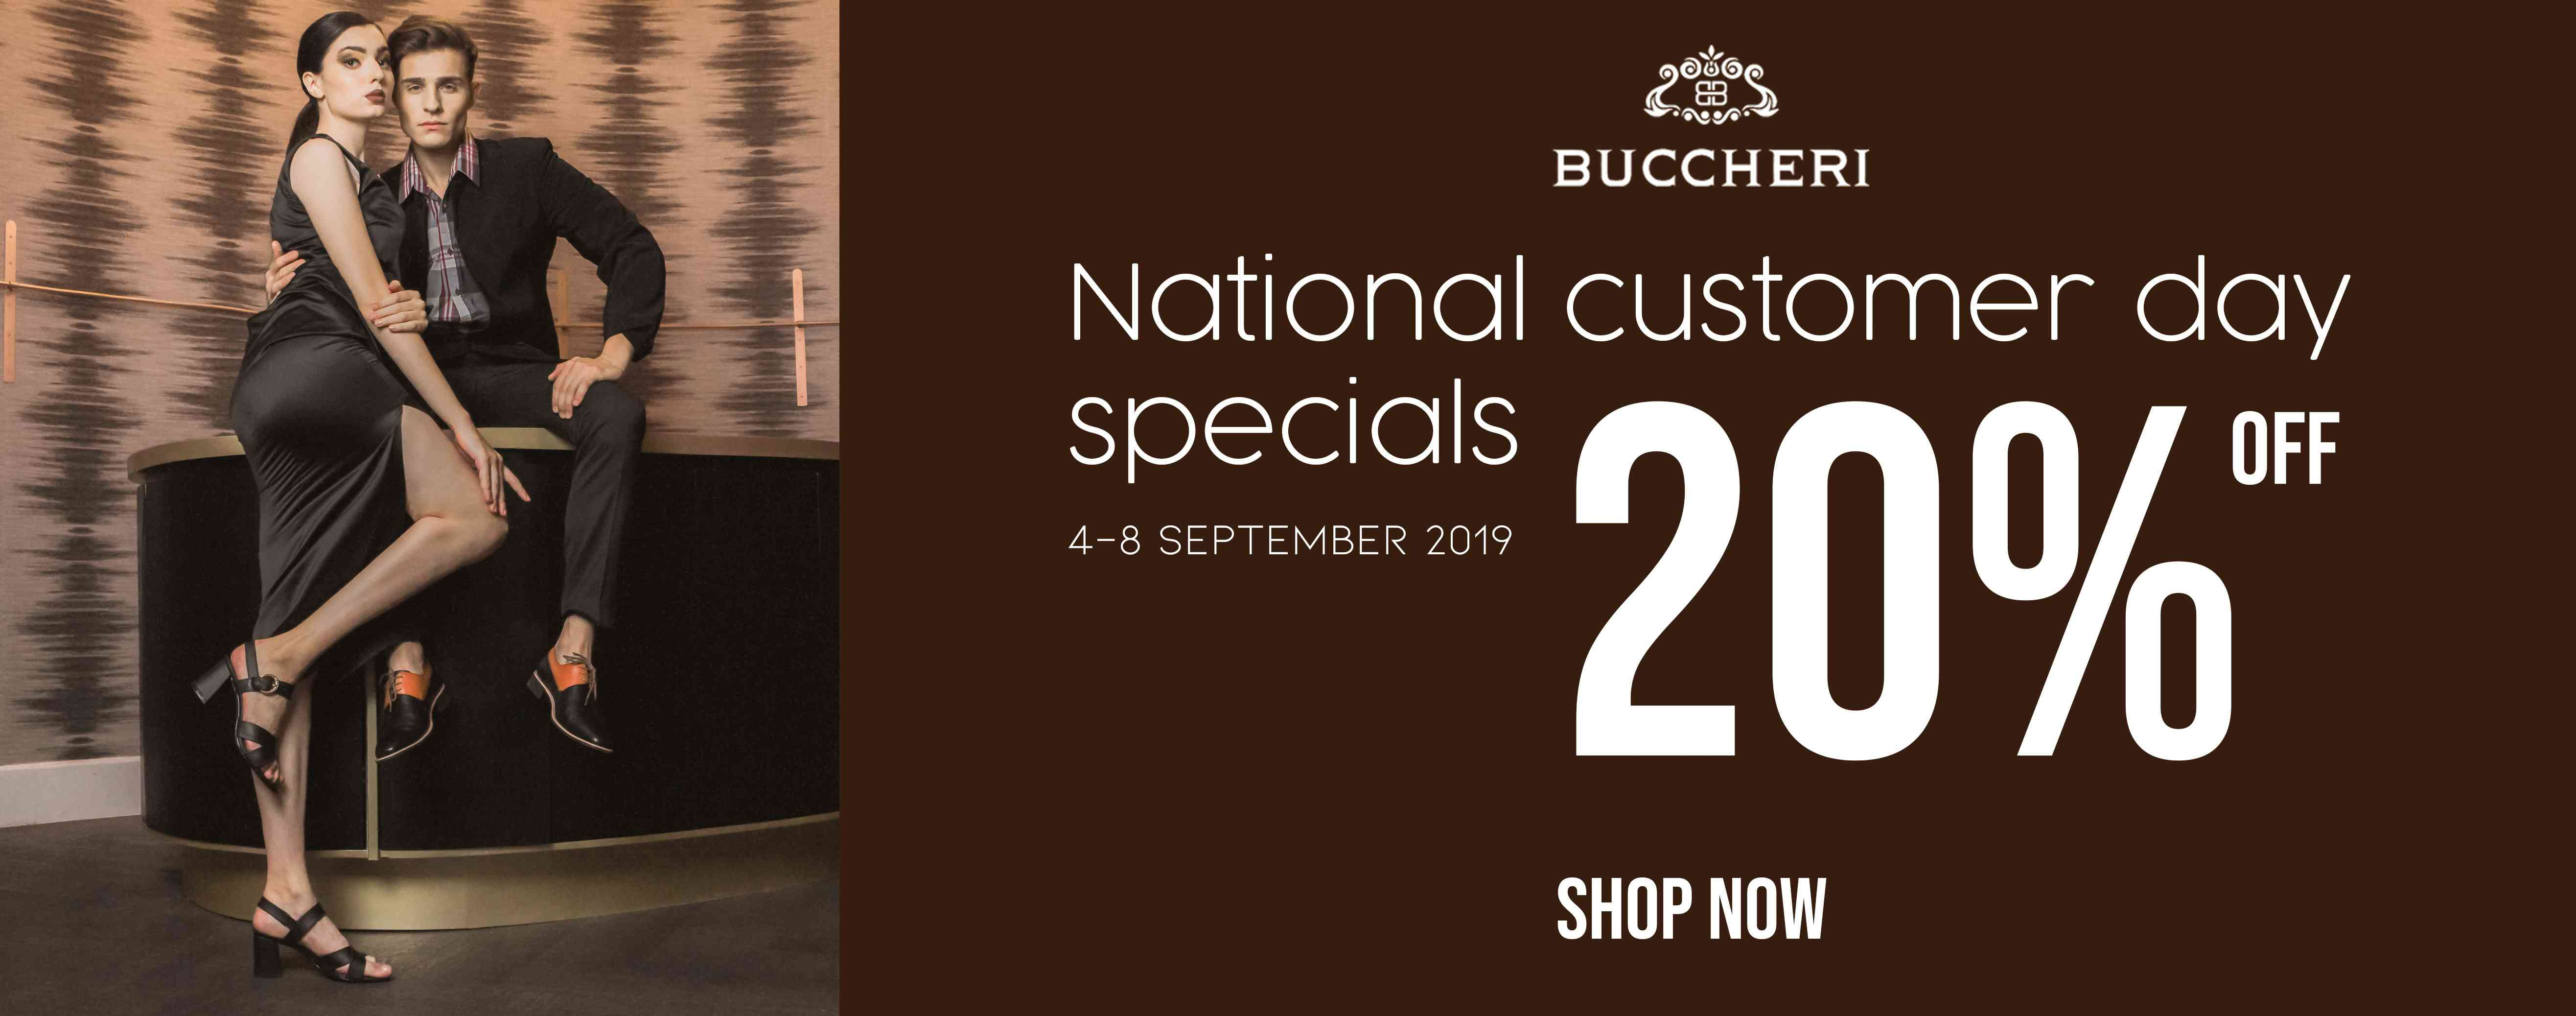 Diskon Buccheri Promo National Customes Day Special Discount 20% Off